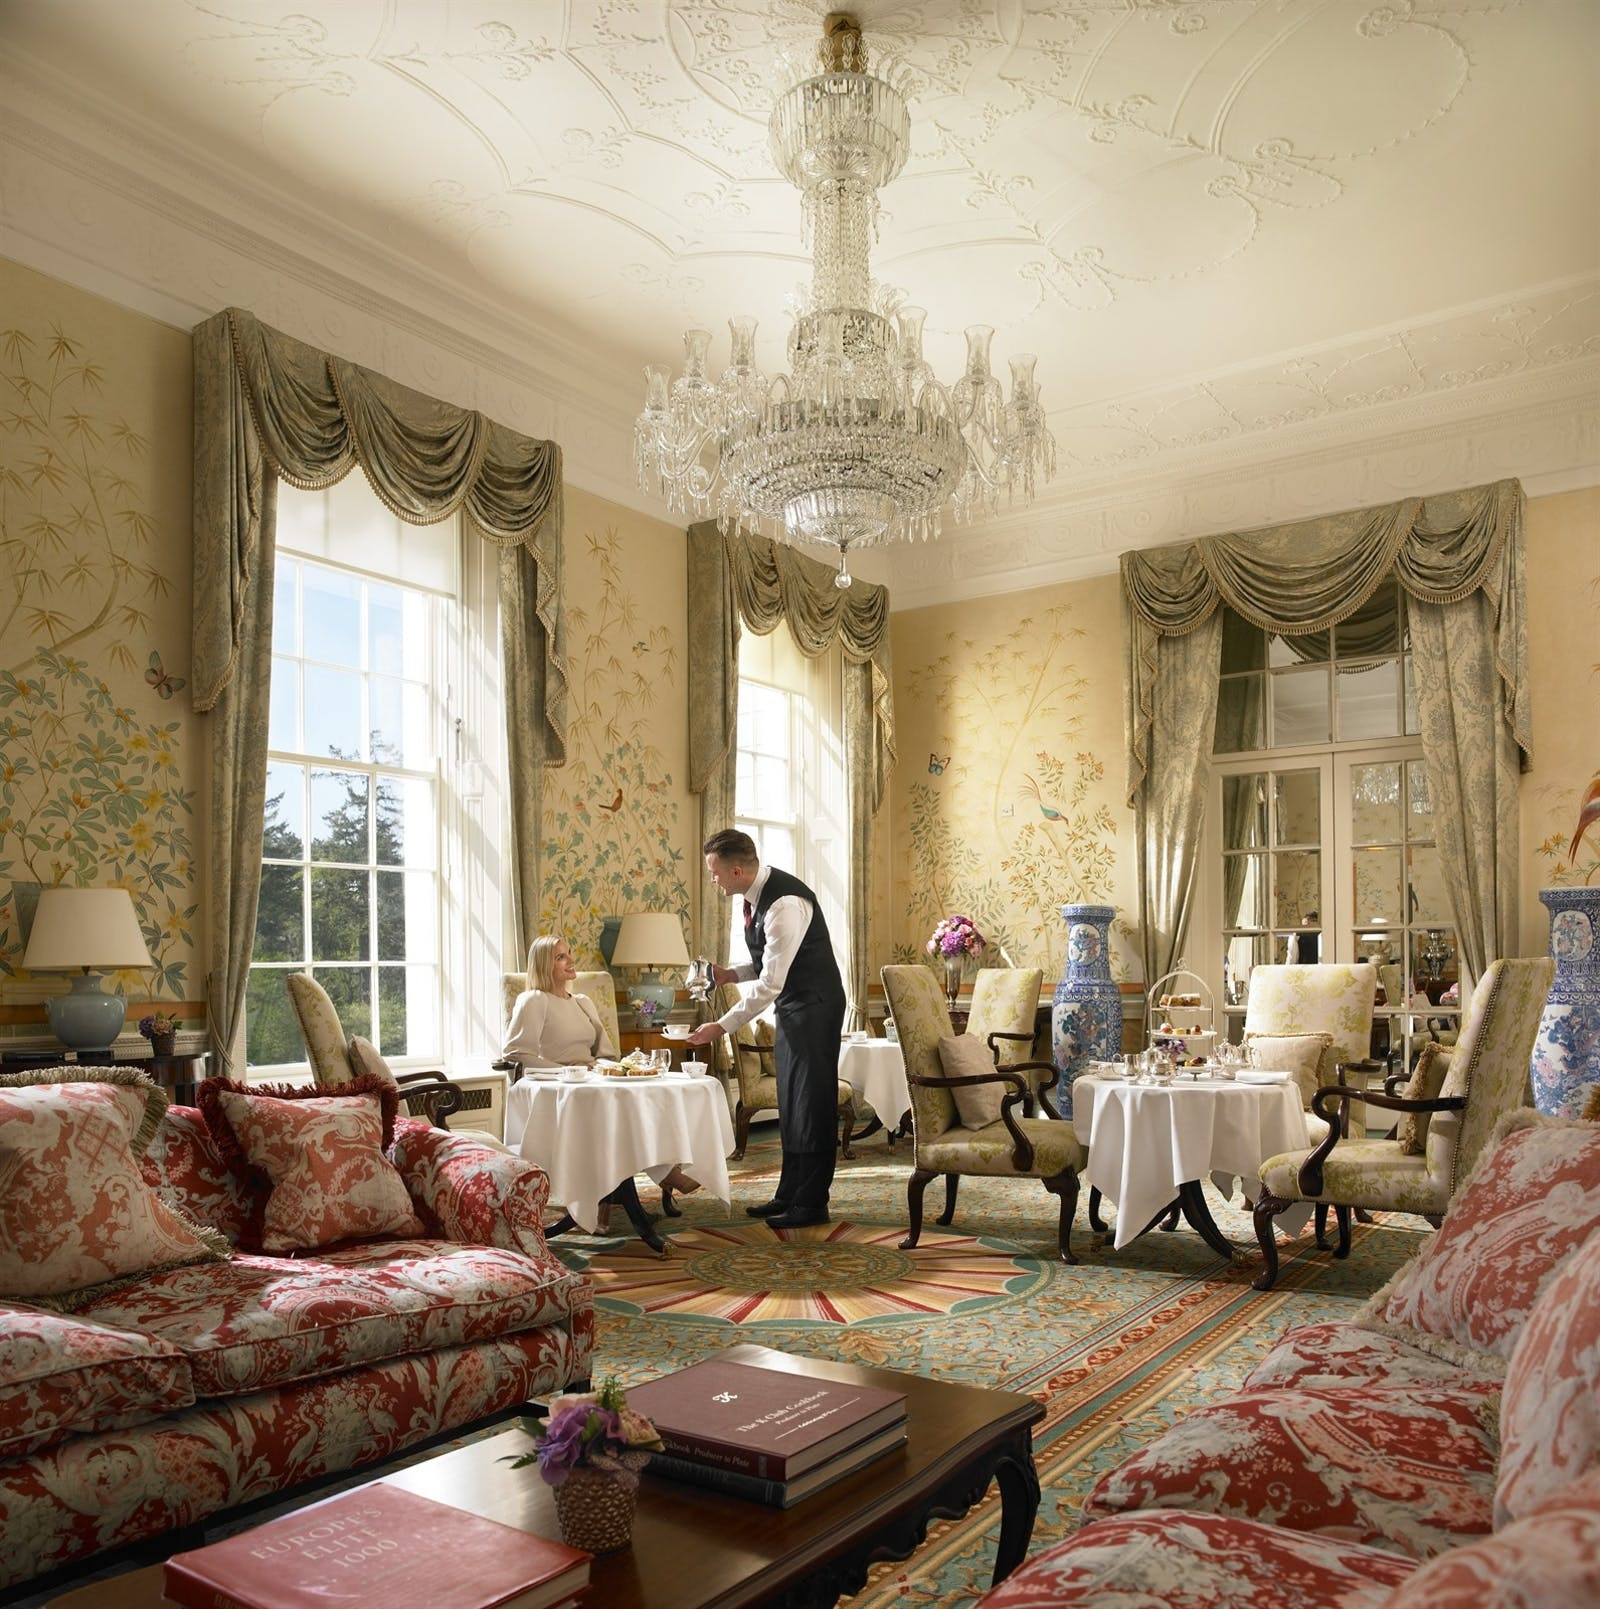 The Chinese Drawing Room at The K Club Hotel, Ireland